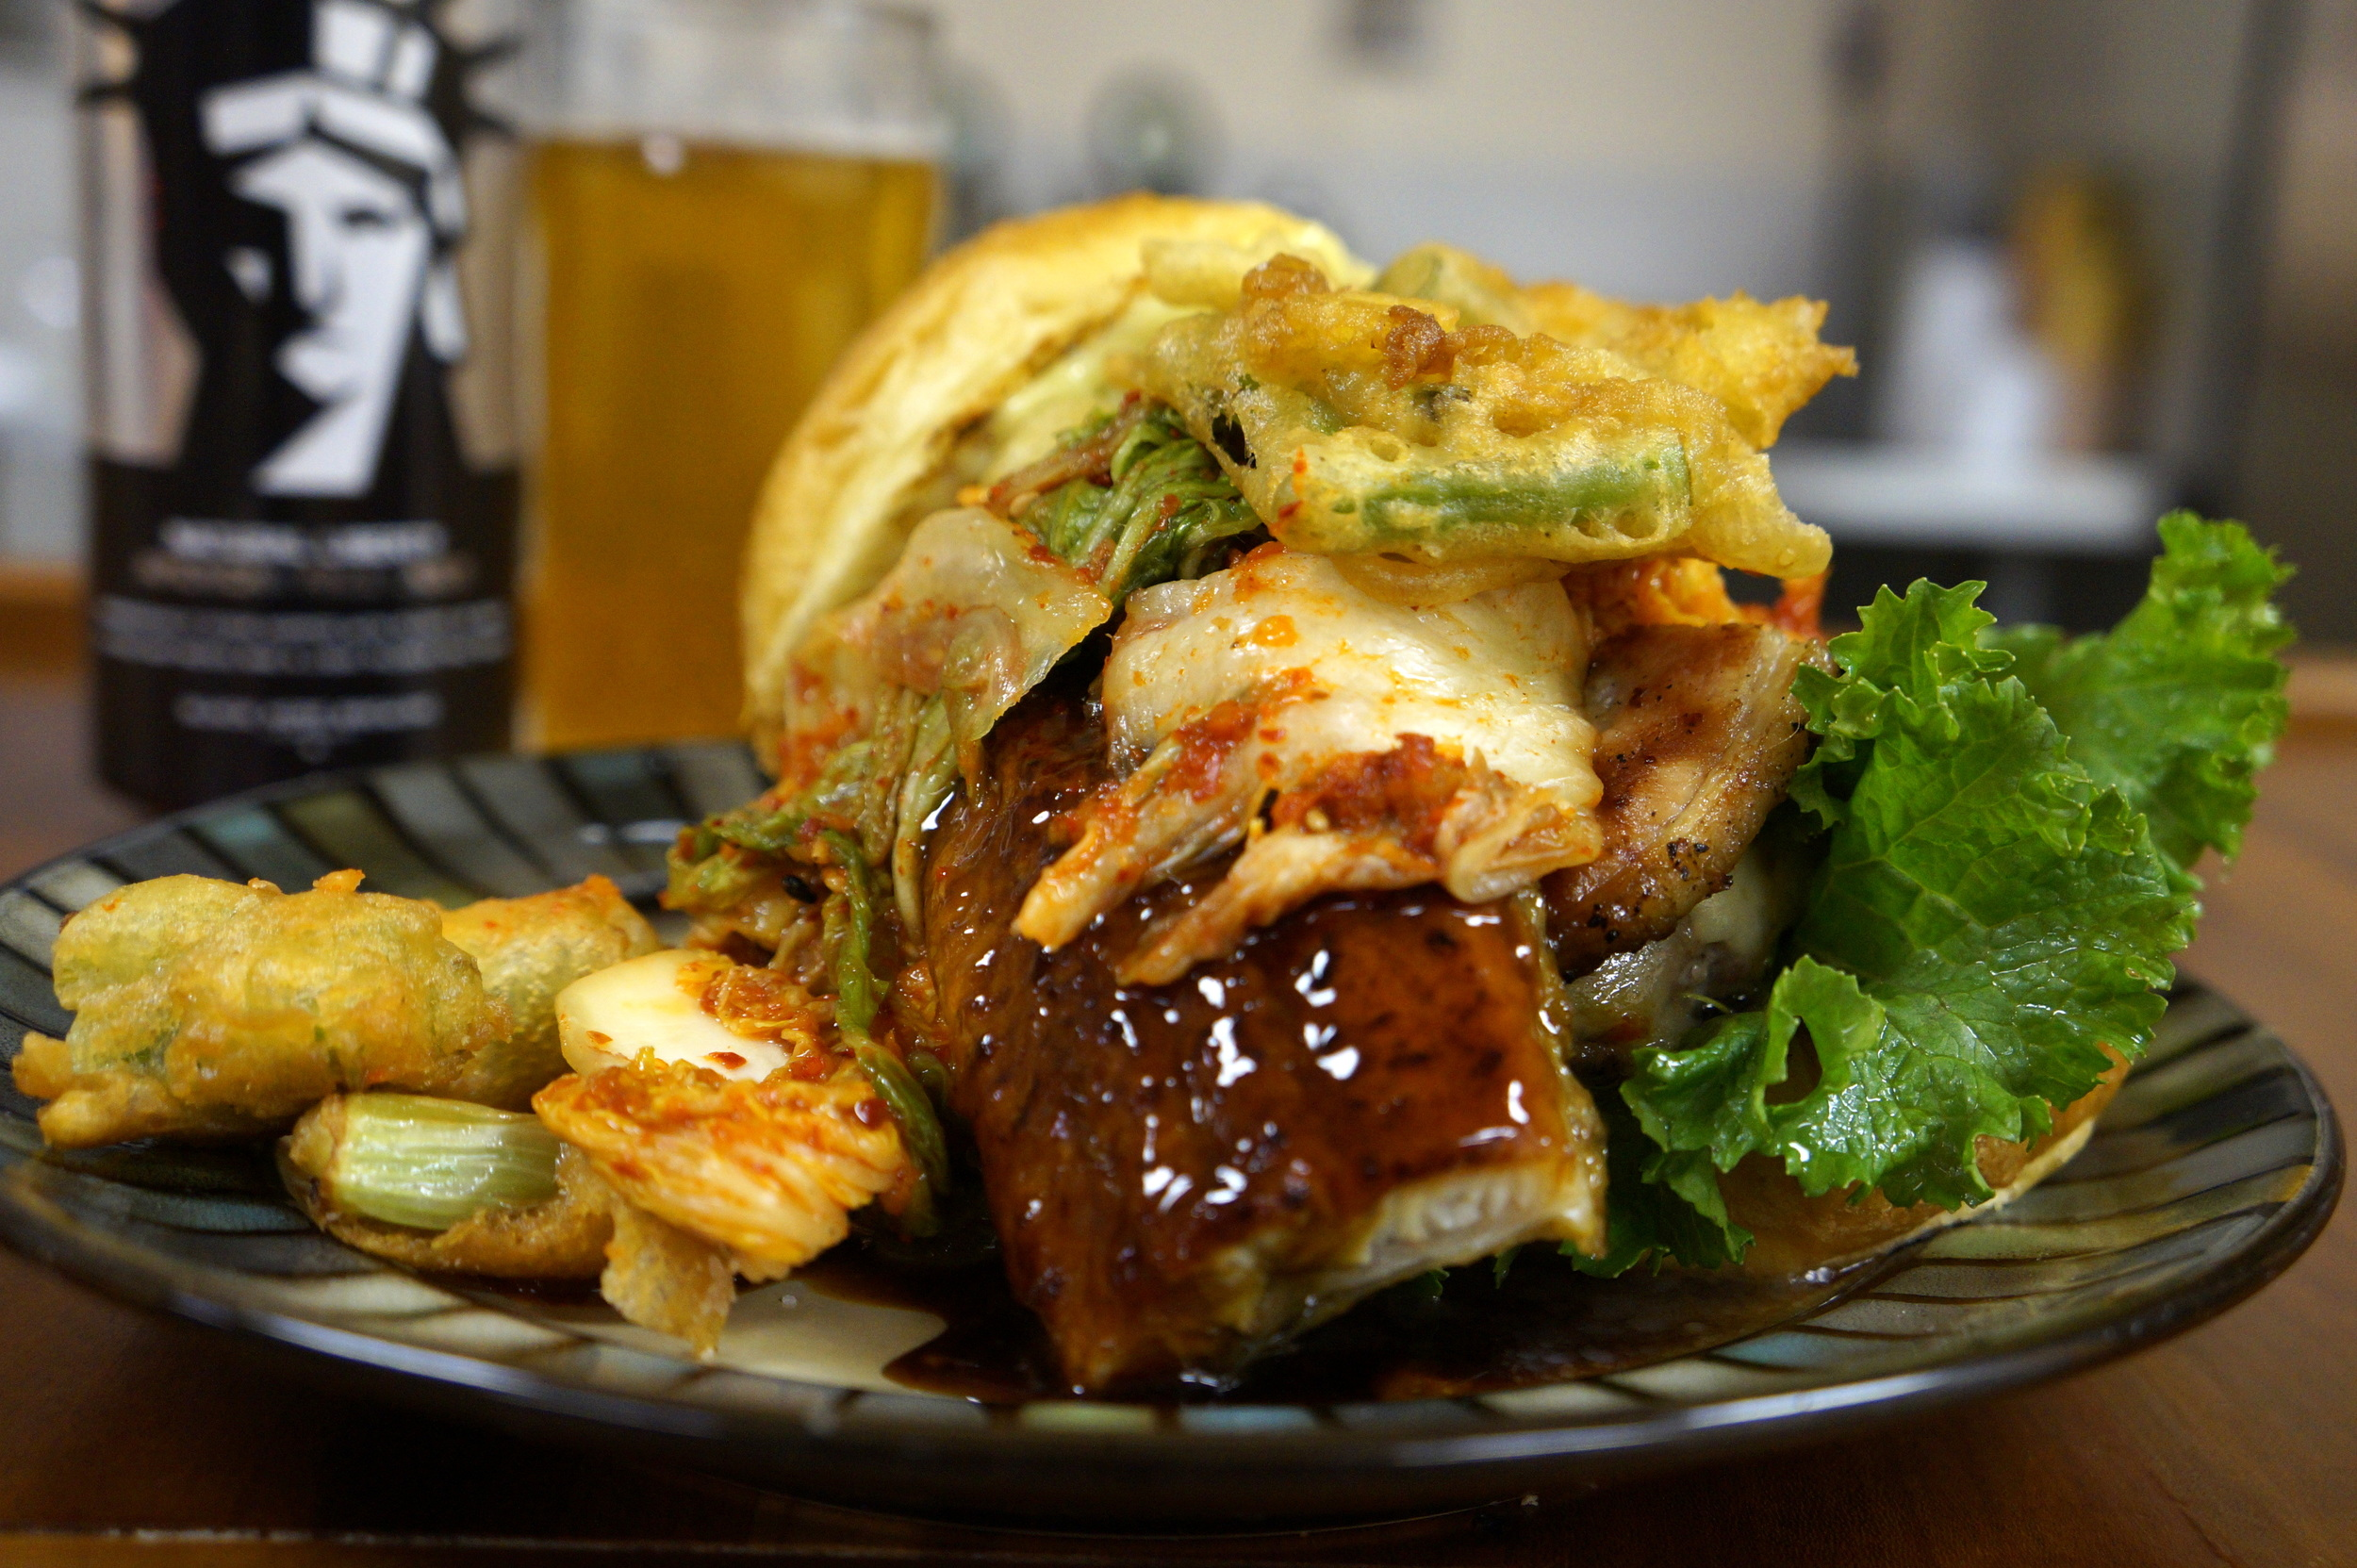 Kimchi, unagi, unagi sauce (made w/ Black Acre's Natural Liberty and Four Rose's bourbon), Fischer Farms beef patty, Love Handle's bacon, Traders Point habanero cheddar, Sriracha, Wasabi mayo and topped with beer-battered green onions.